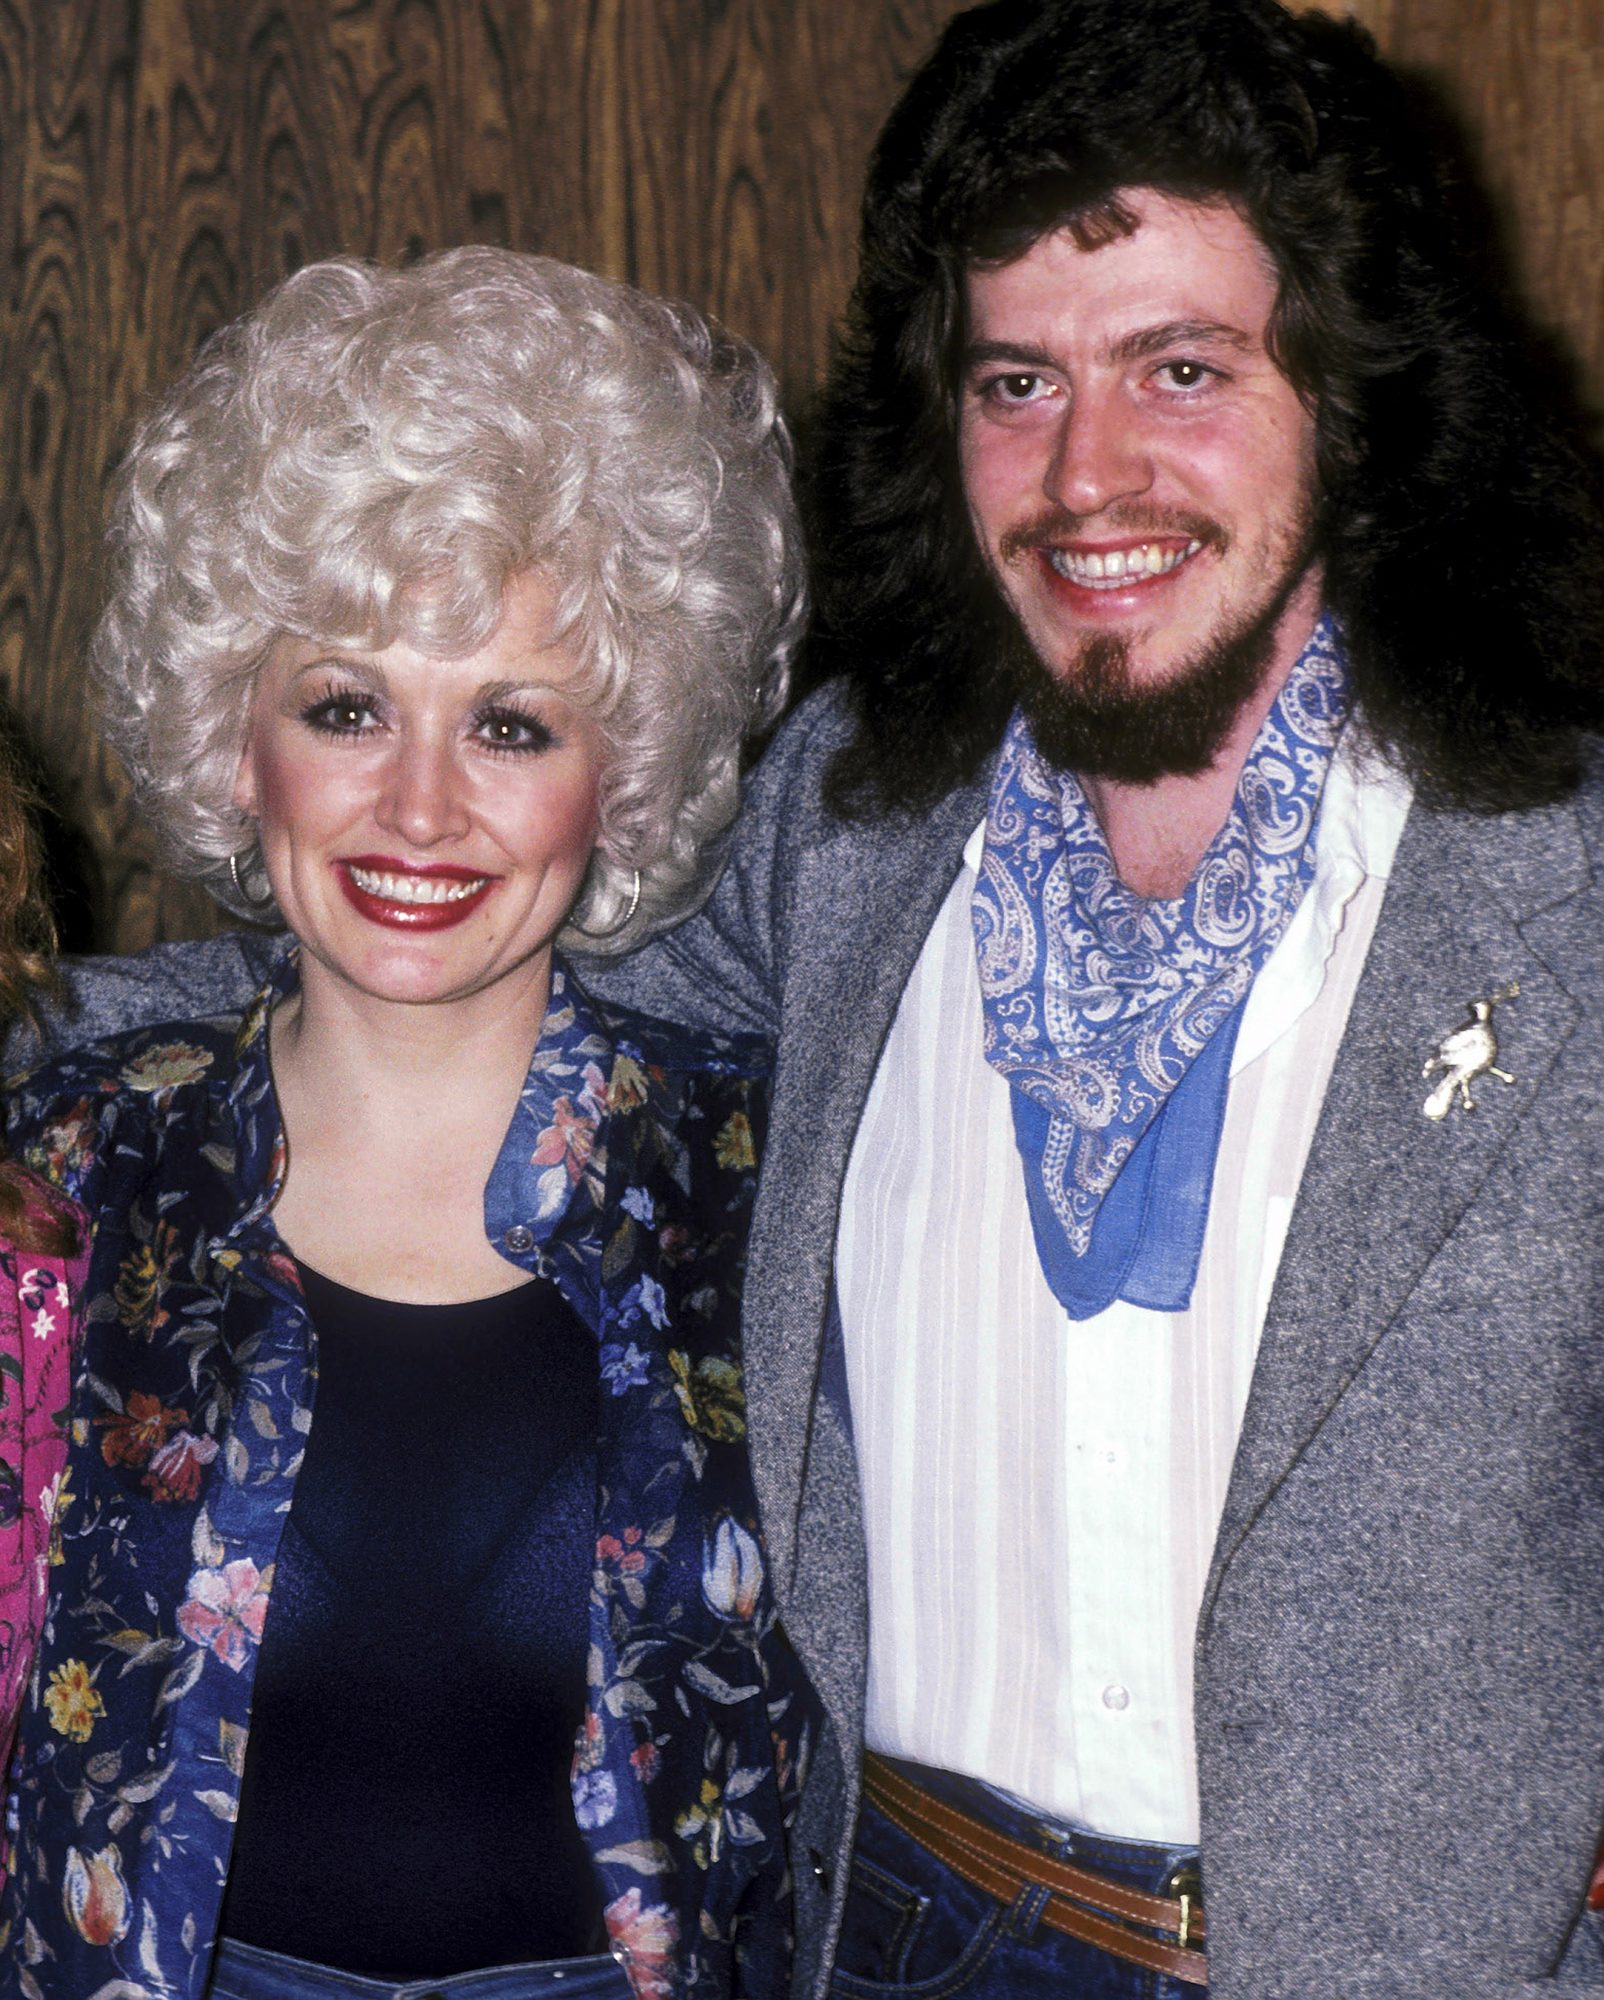 Dolly Parton's Brother and Longtime Songwriting Partner Floyd Parton Dies at 61